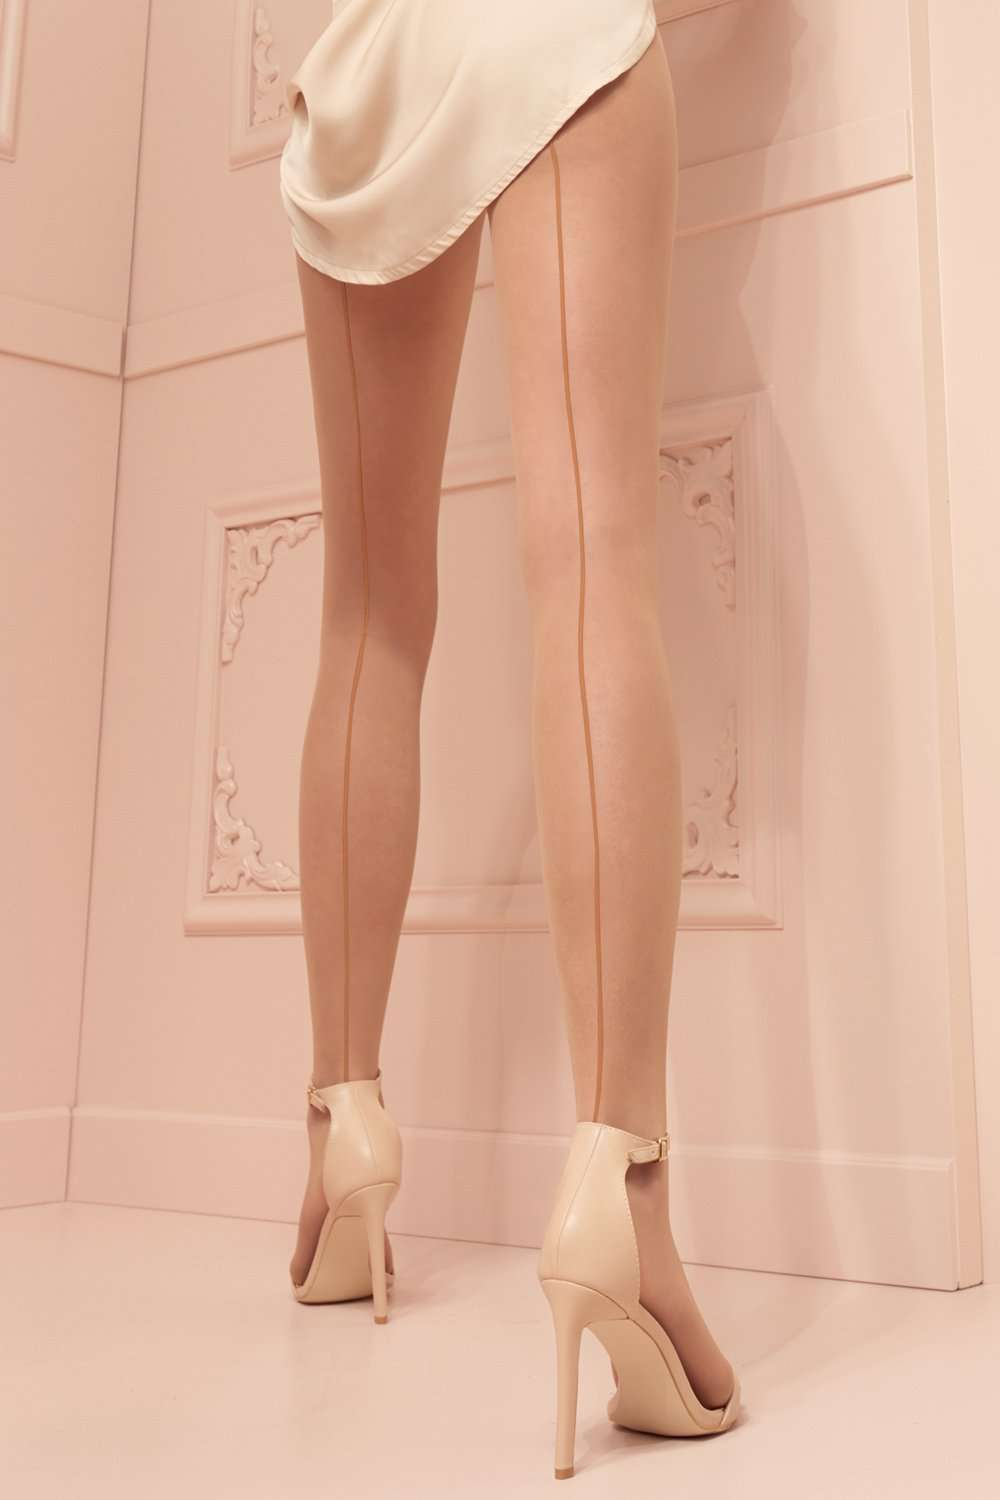 Trasparenze Jessy Back Seamed Tights 20 Denier